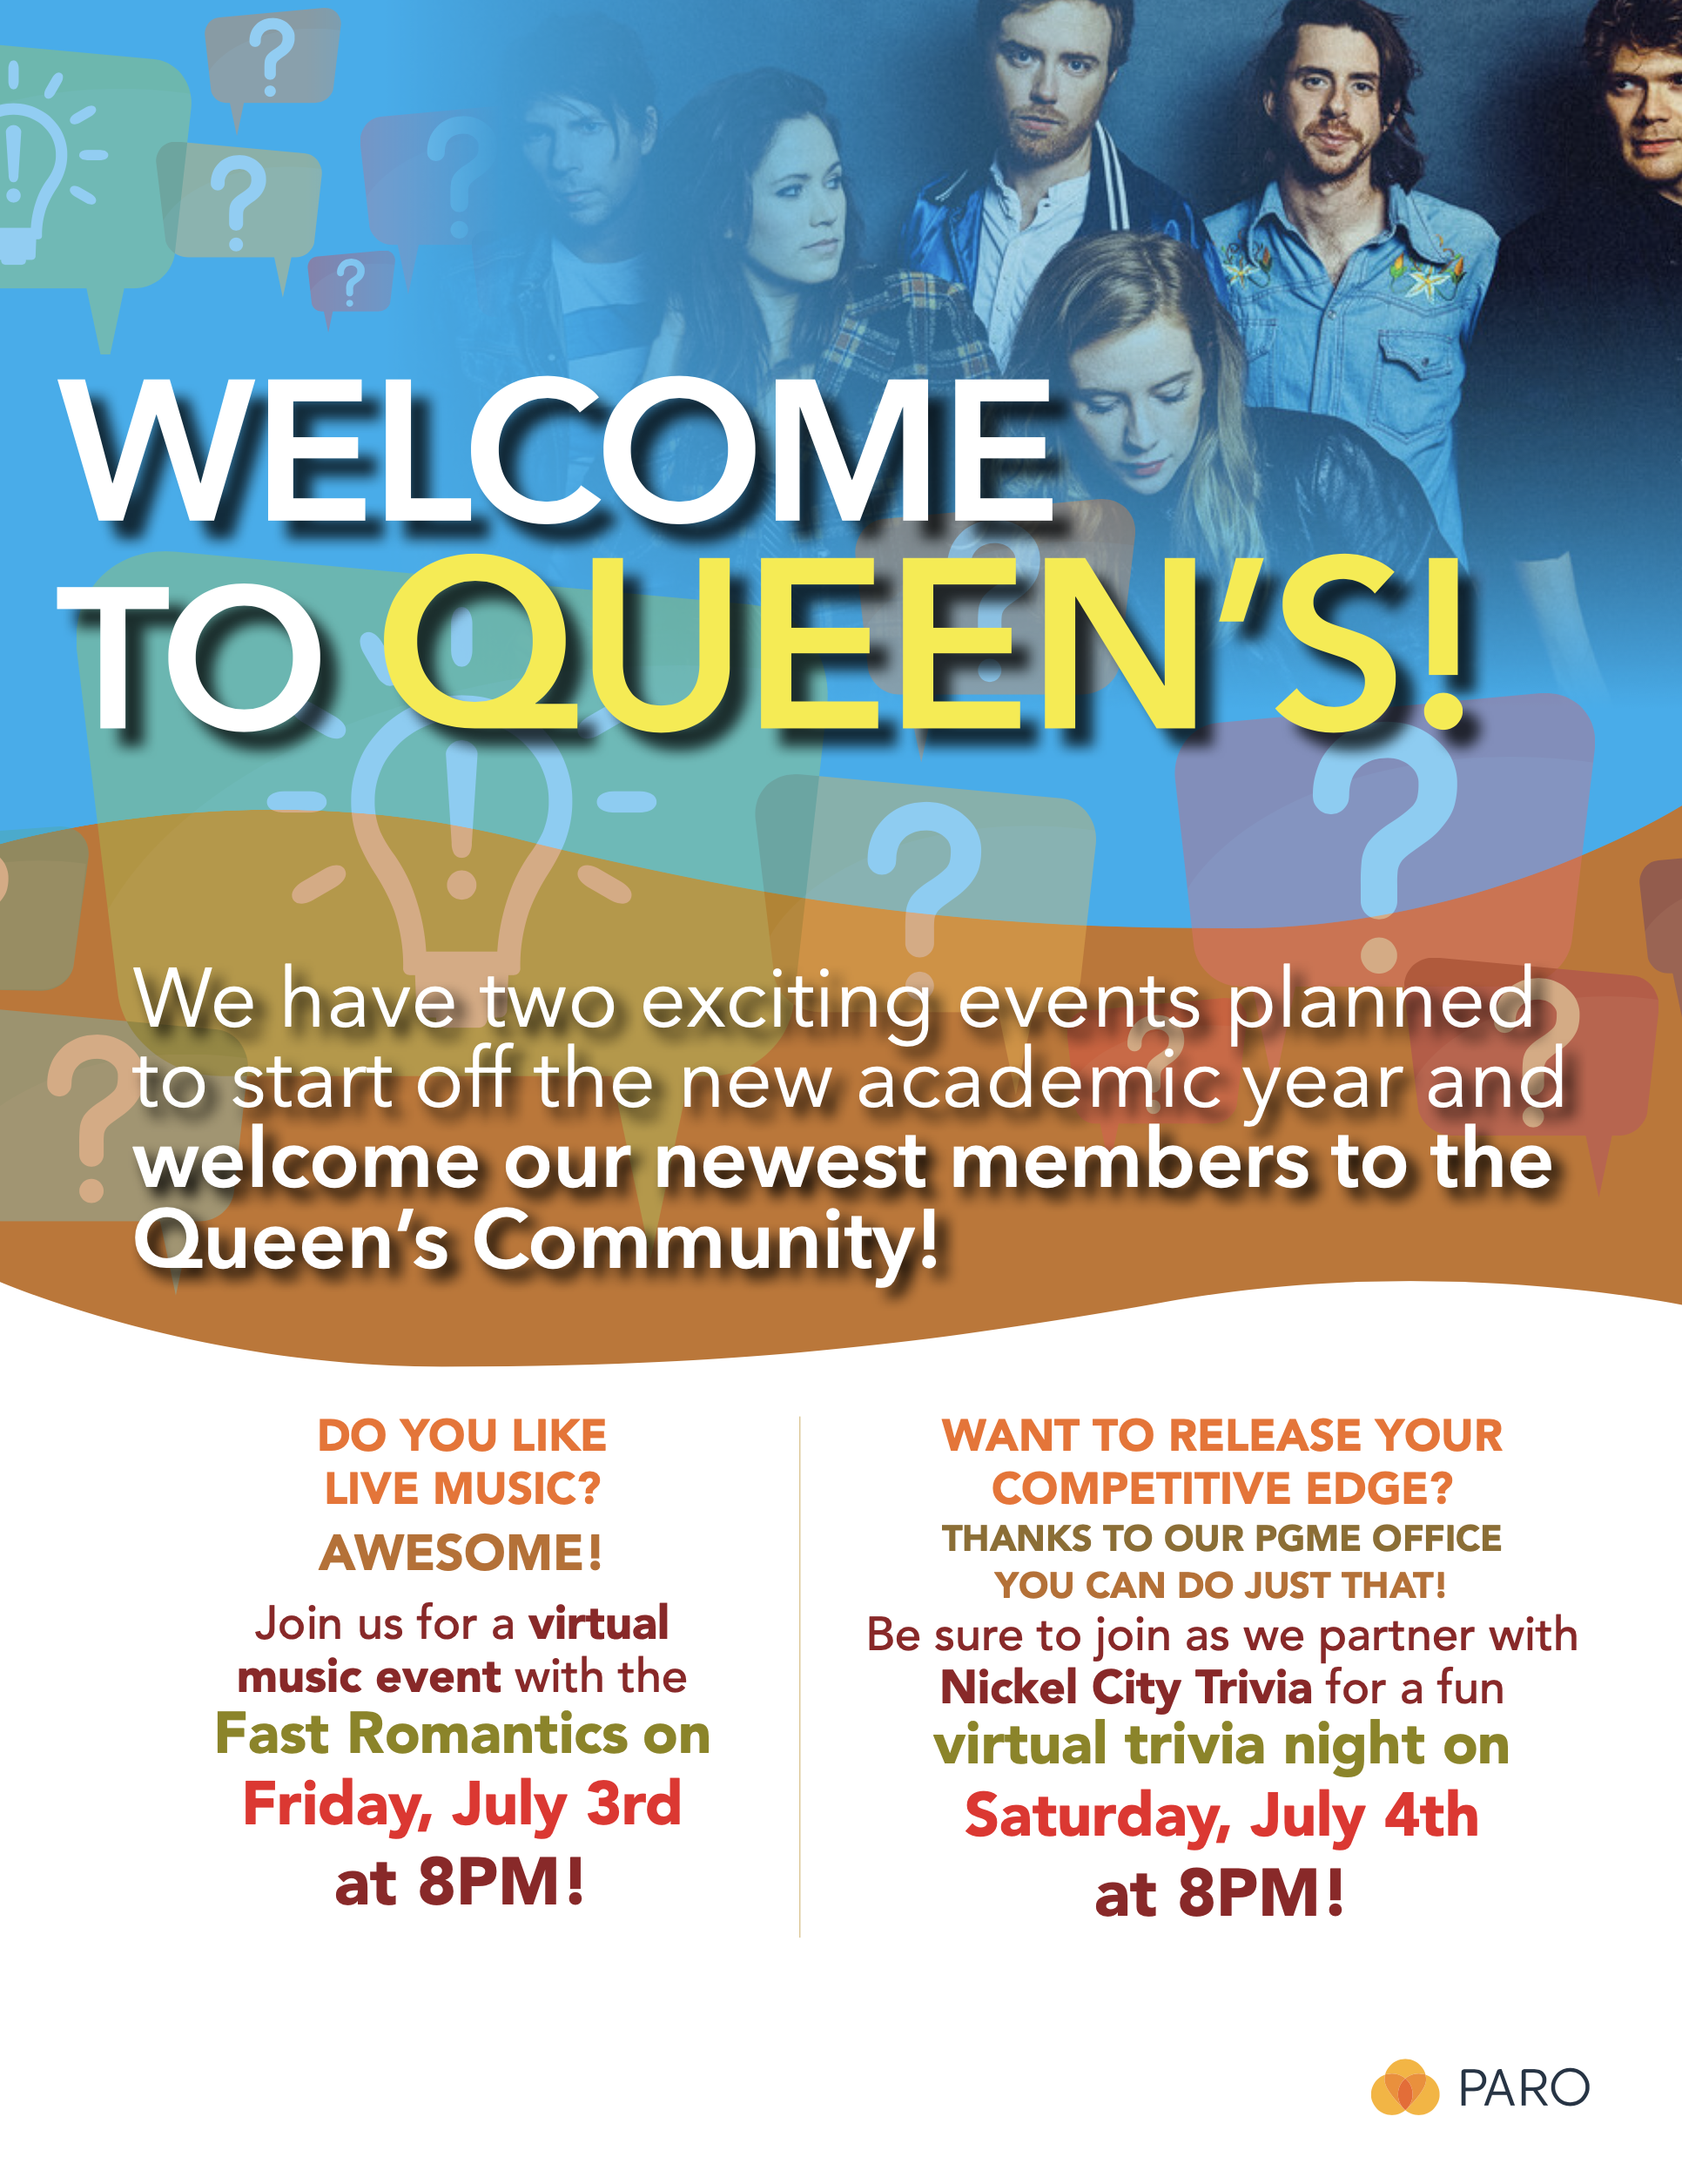 Welcome to Queen's!